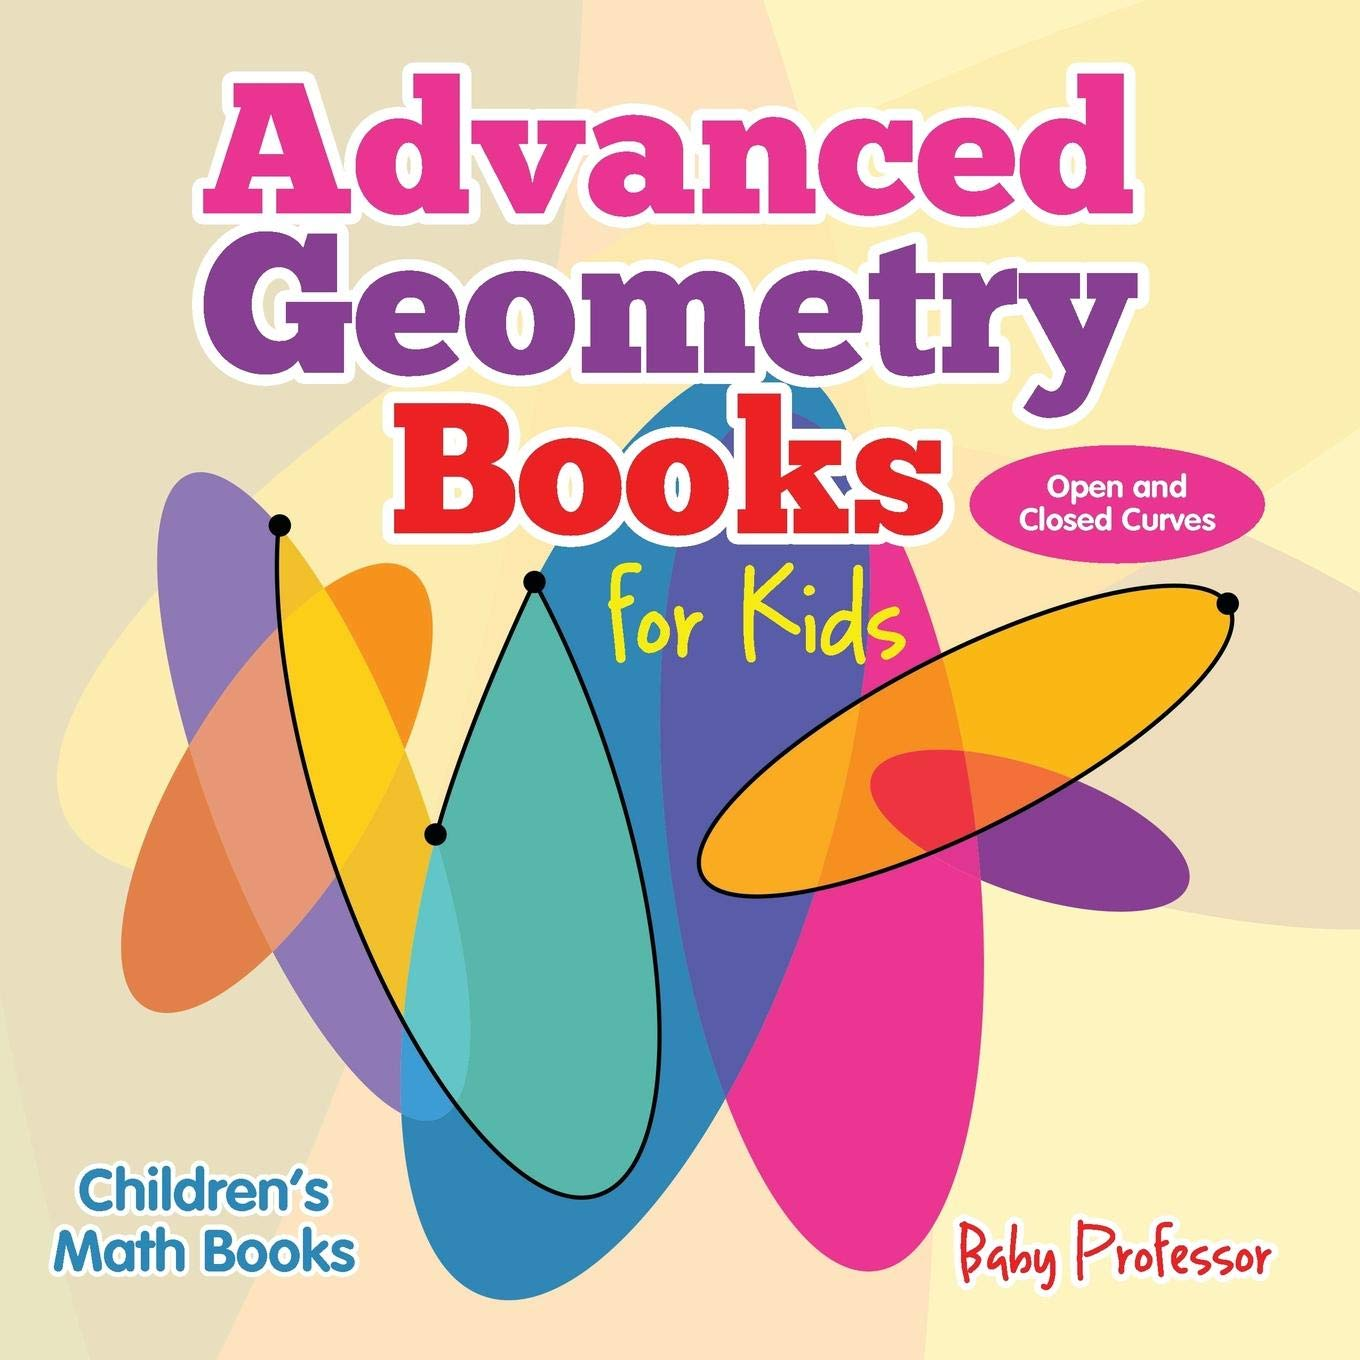 Amazon.com: Advanced Geometry Books for Kids - Open and ...